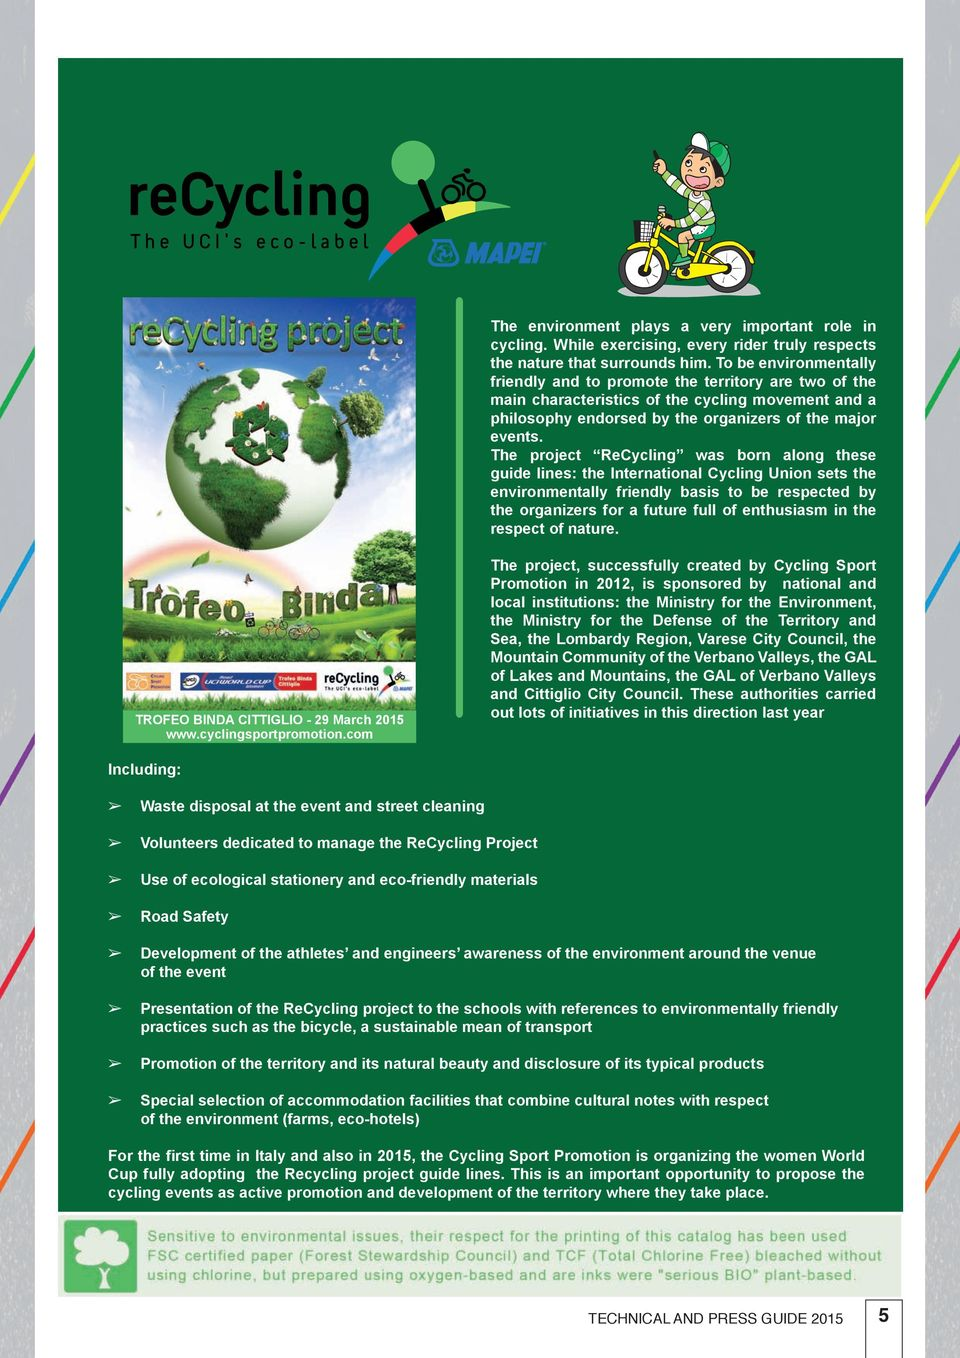 The project ReCycling was born along these guide lines: the International Cycling Union sets the environmentally friendly basis to be respected by the organizers for a future full of enthusiasm in